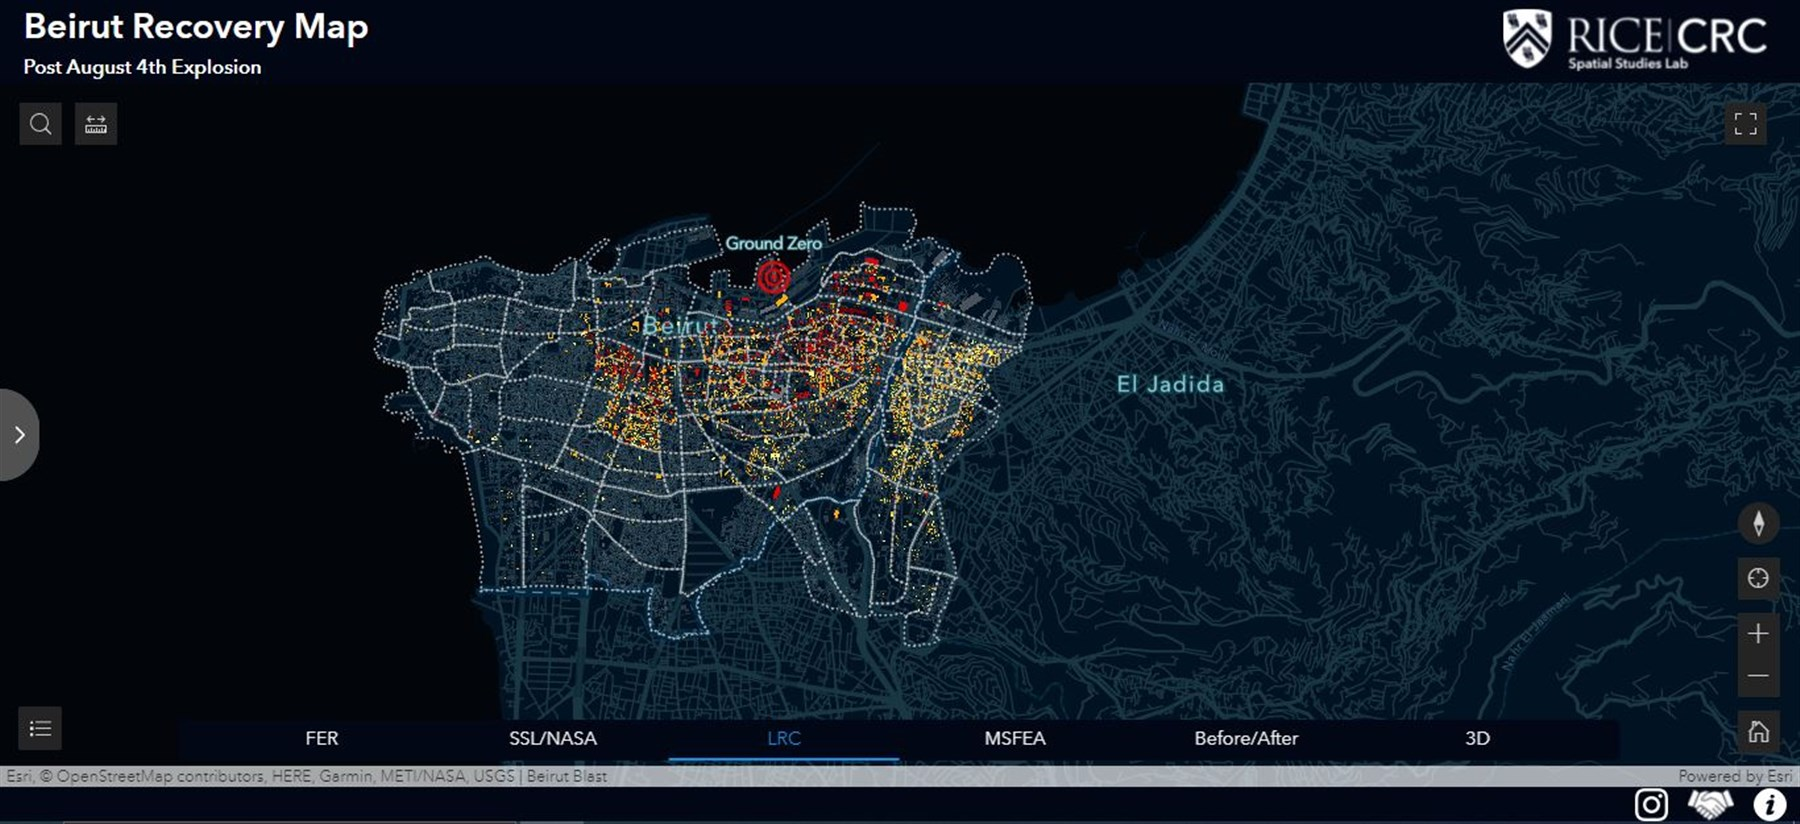 A first damage assessment map based on the BUL/LNSCR base map visualizing the extent of damage and ongoing repair works after Beirut August 4th blast.